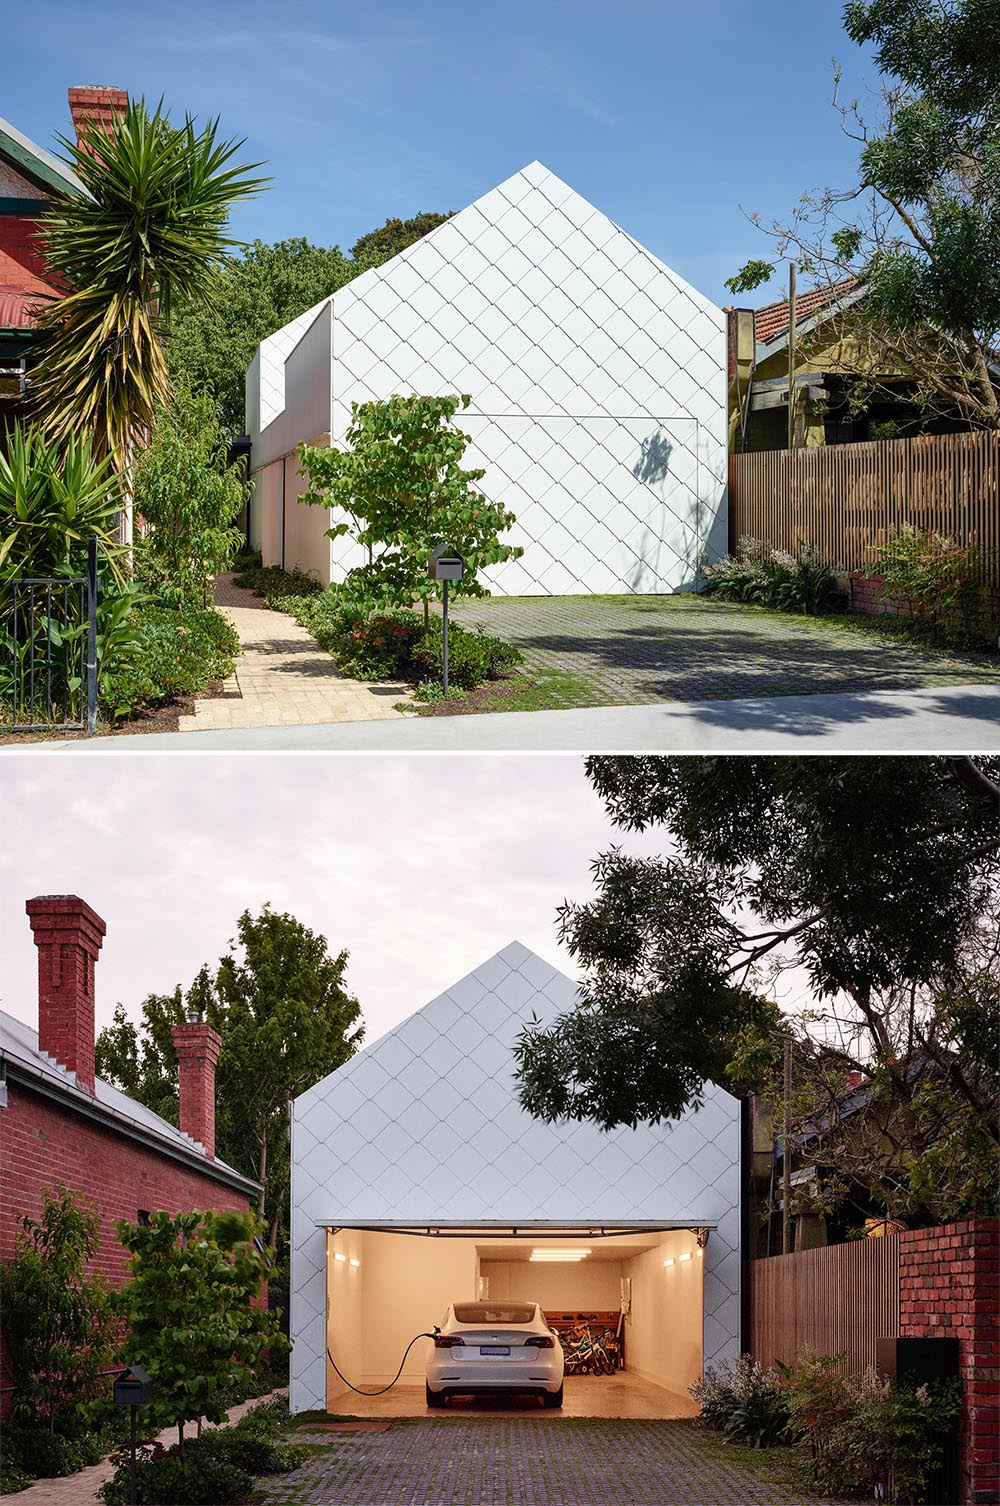 The home is hidden from the street and accessed via a pedestrian laneway that travels from the garage to the main living spaces.